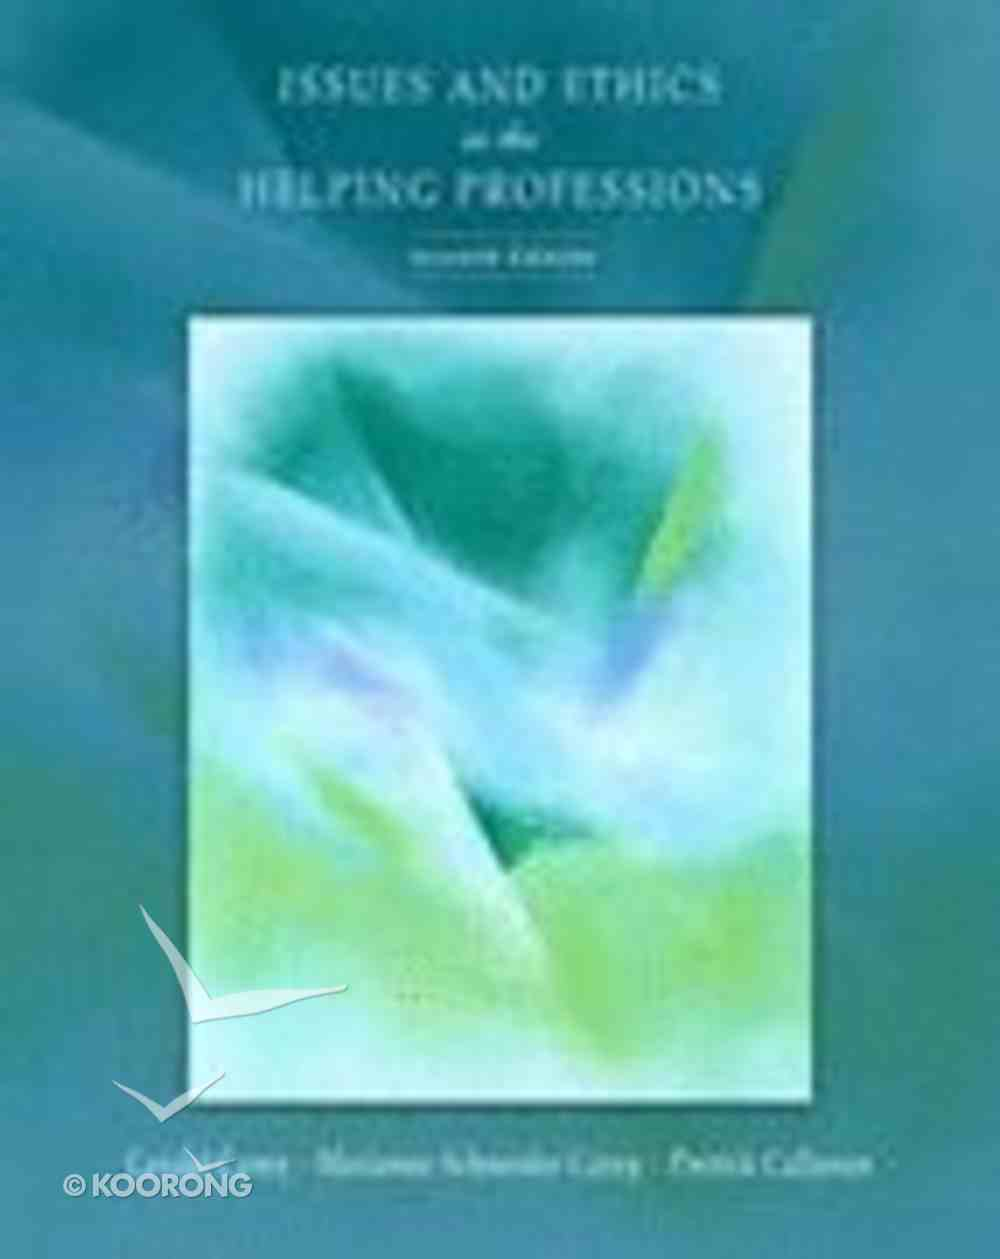 Issues and Ethics in the Helping Professions (7th Ed) Paperback